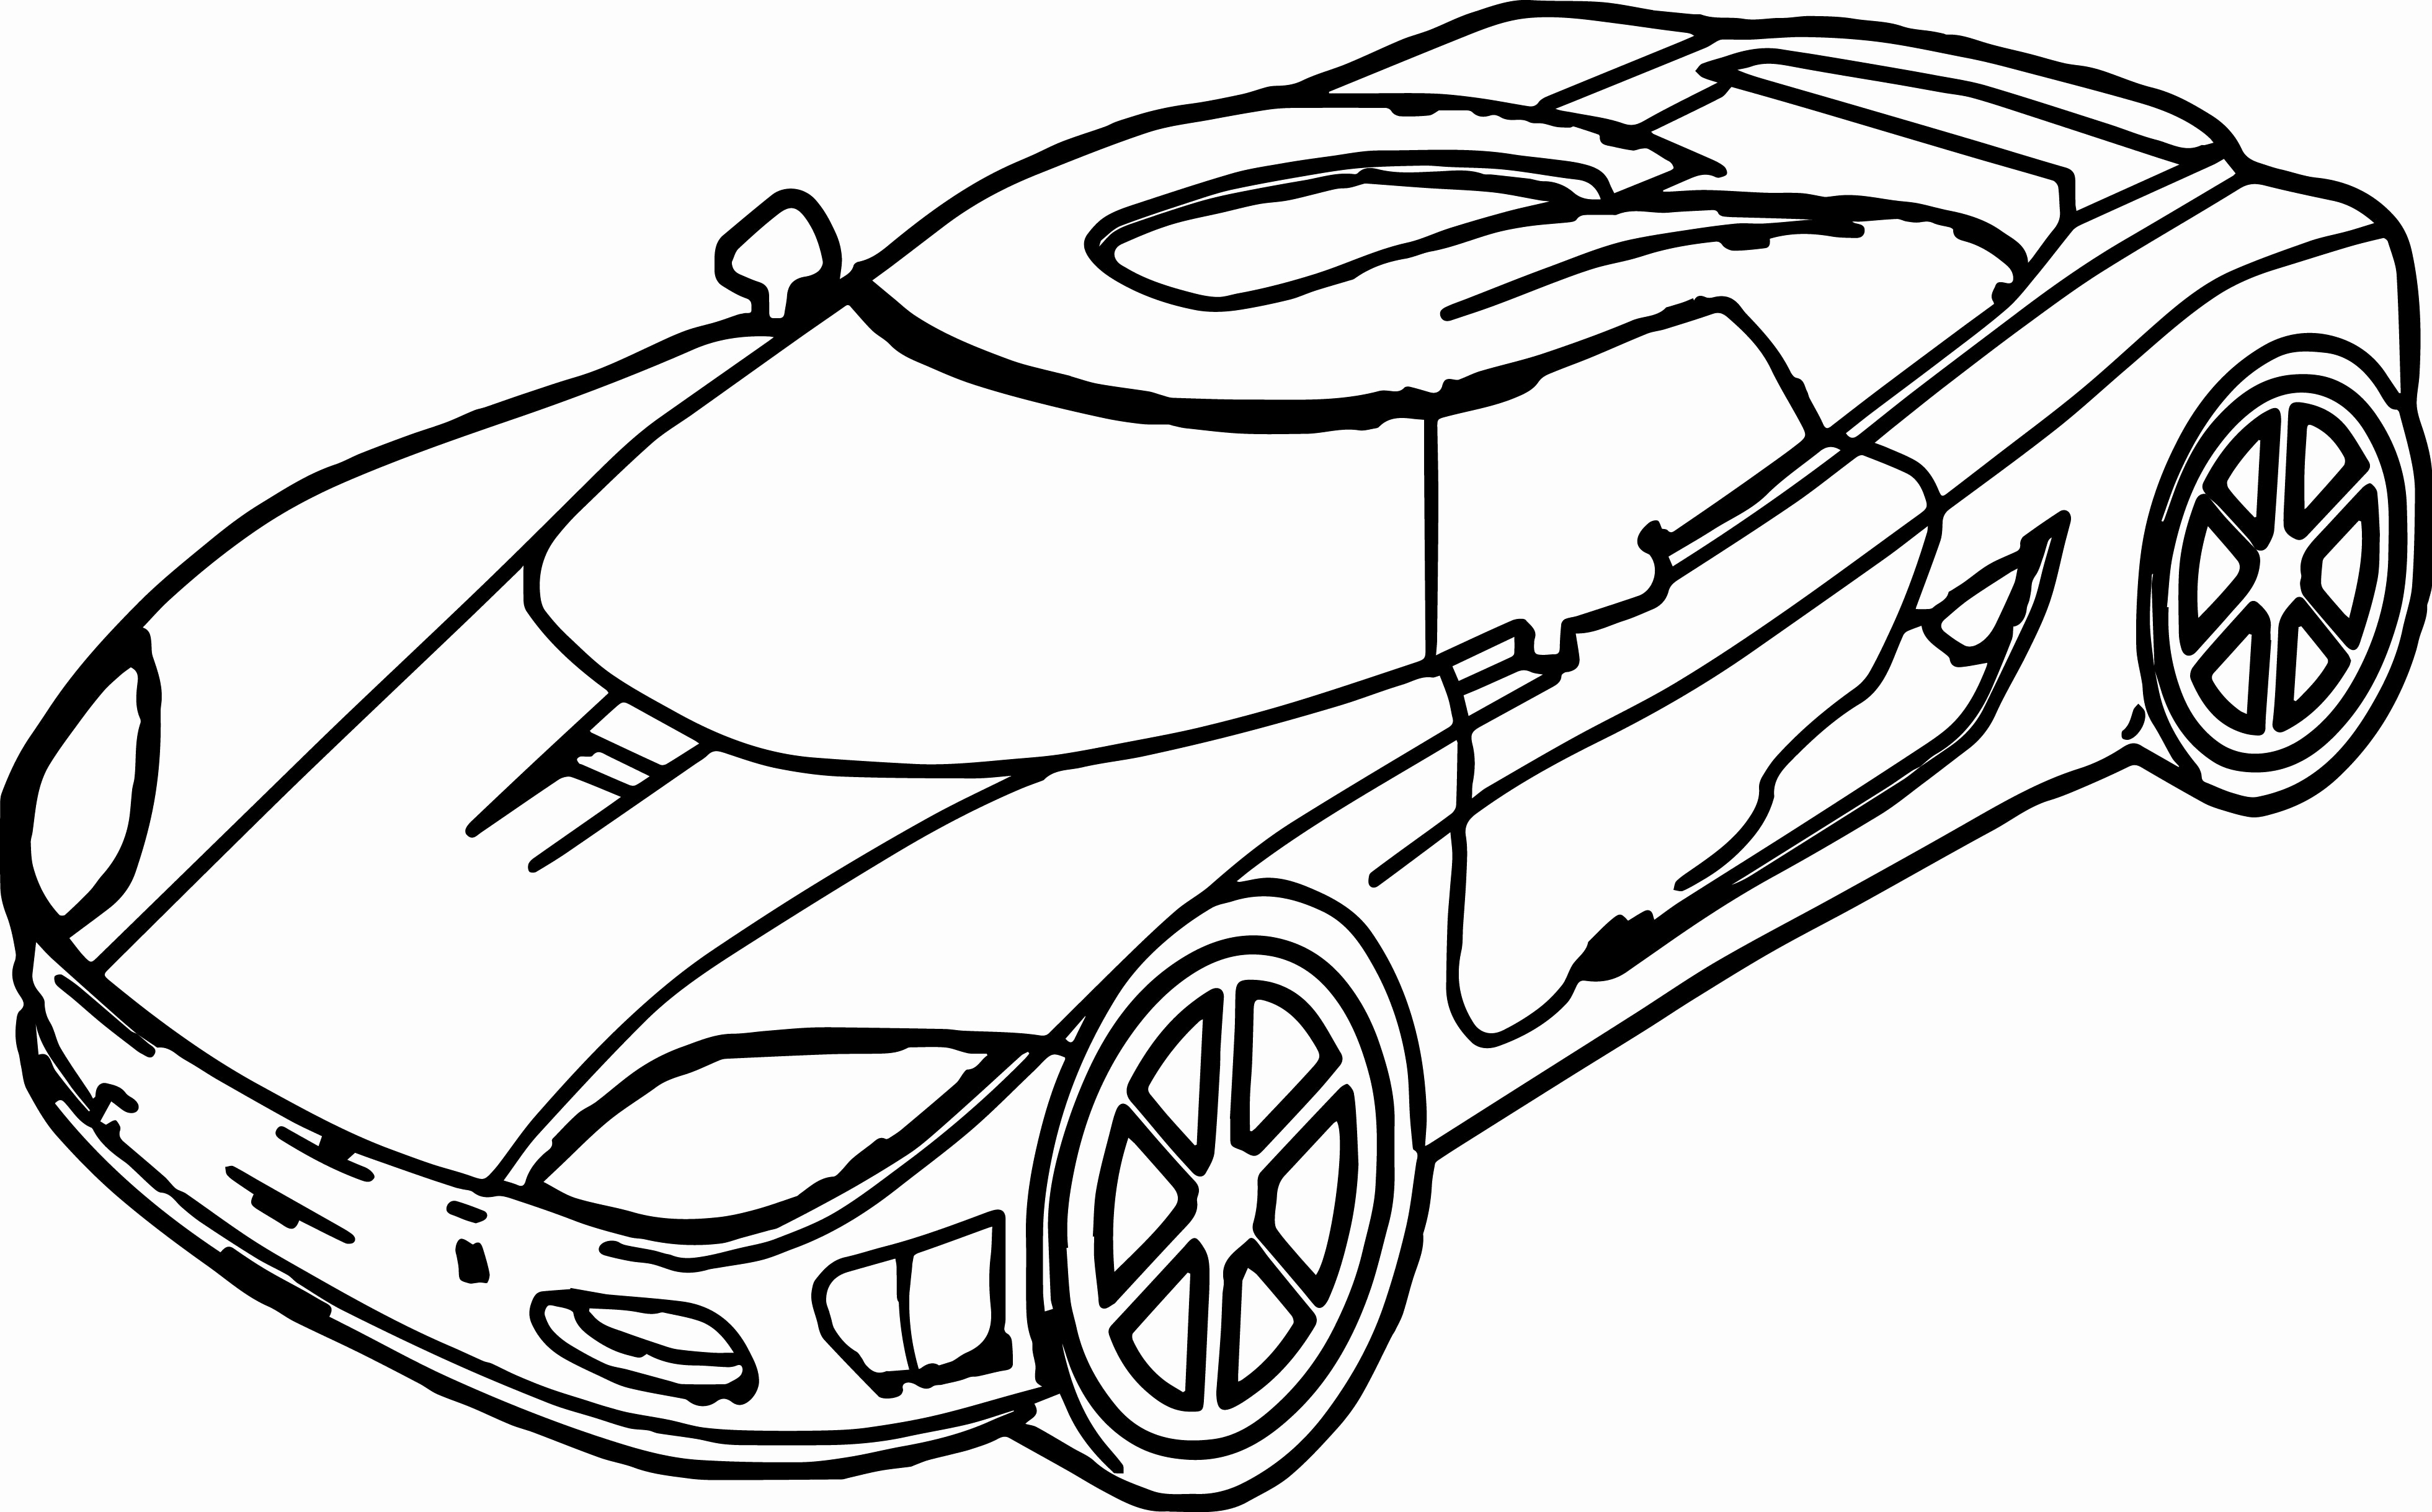 Sports Car Coloring Pages Sports Car Coloring Pages Best Of Toy Car Coloring Pages Coloring